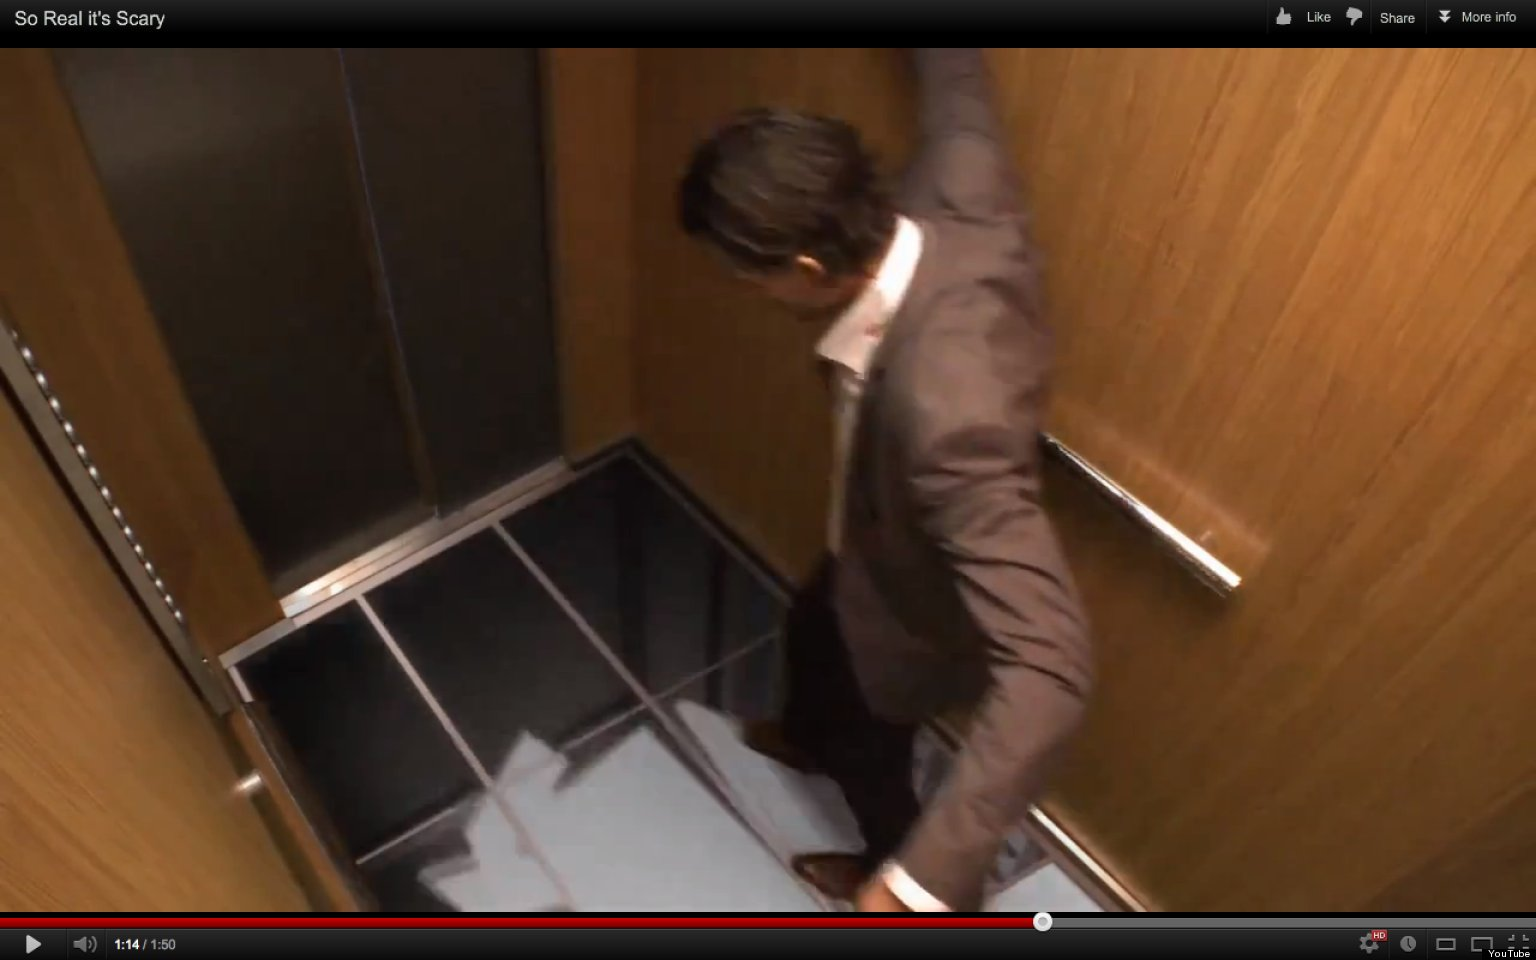 LG Pranks Elevator Riders Makes It Seem Theyre About To